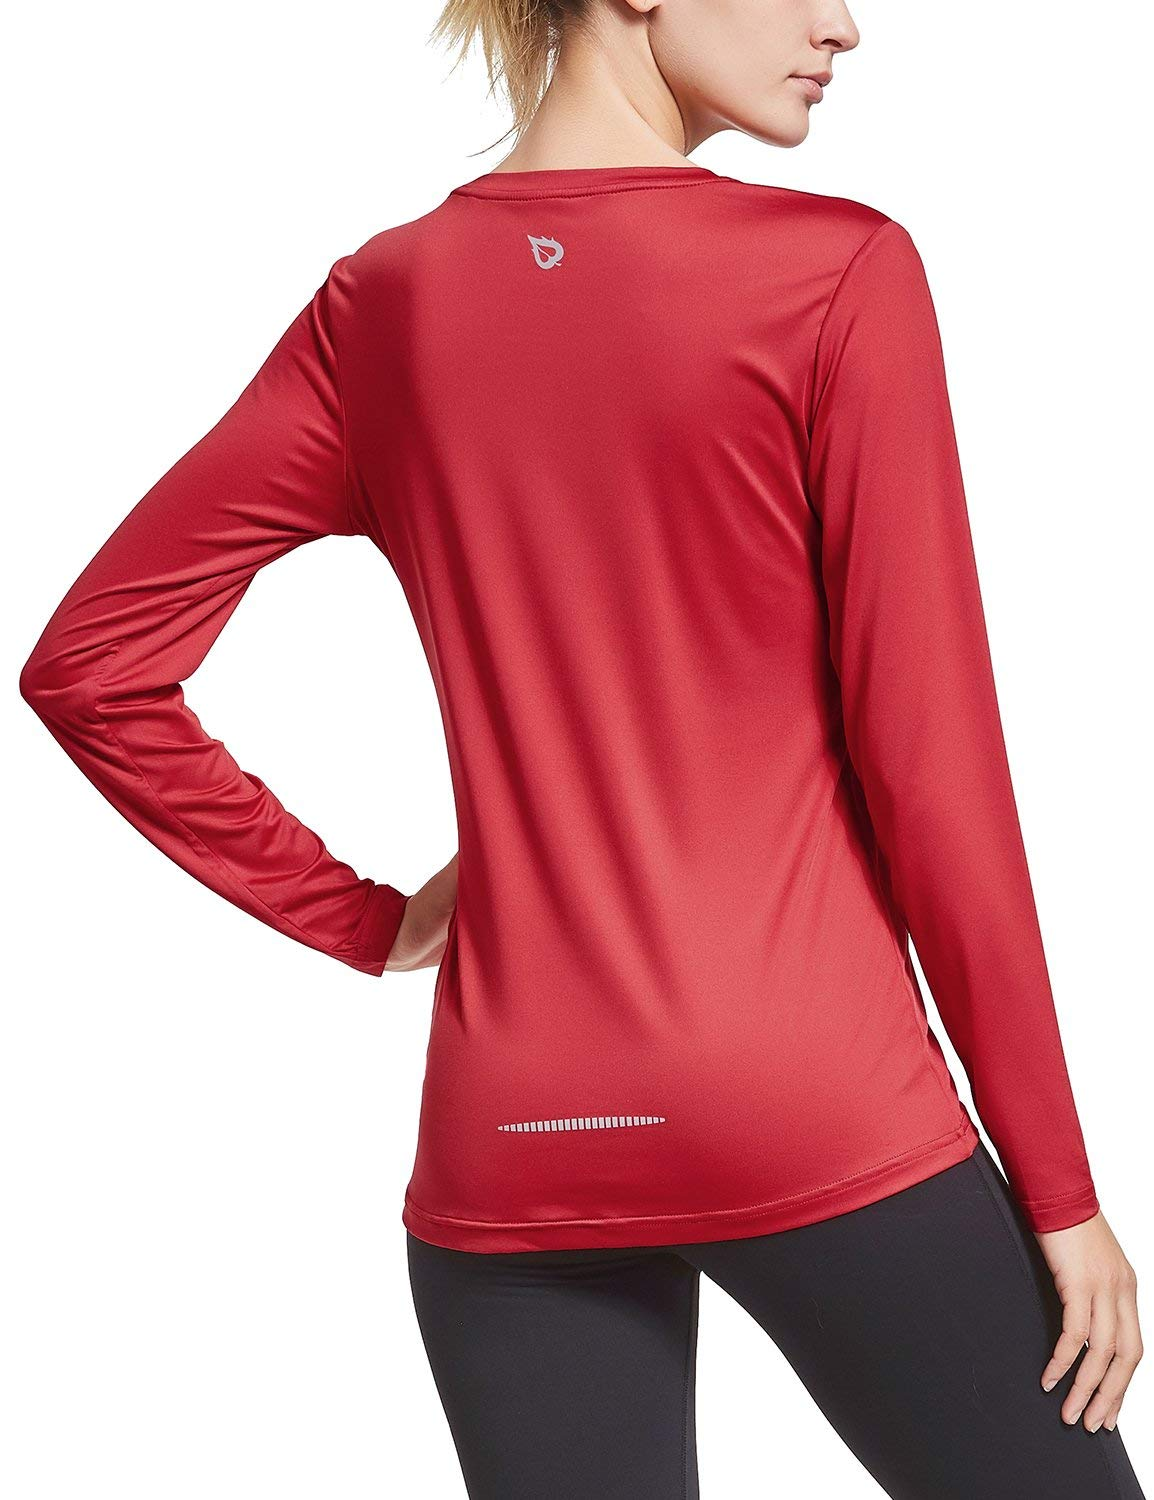 BALEAF Women's Long Sleeve T-Shirt Quick Dry Running Workout Shirts Red Size XXL by BALEAF